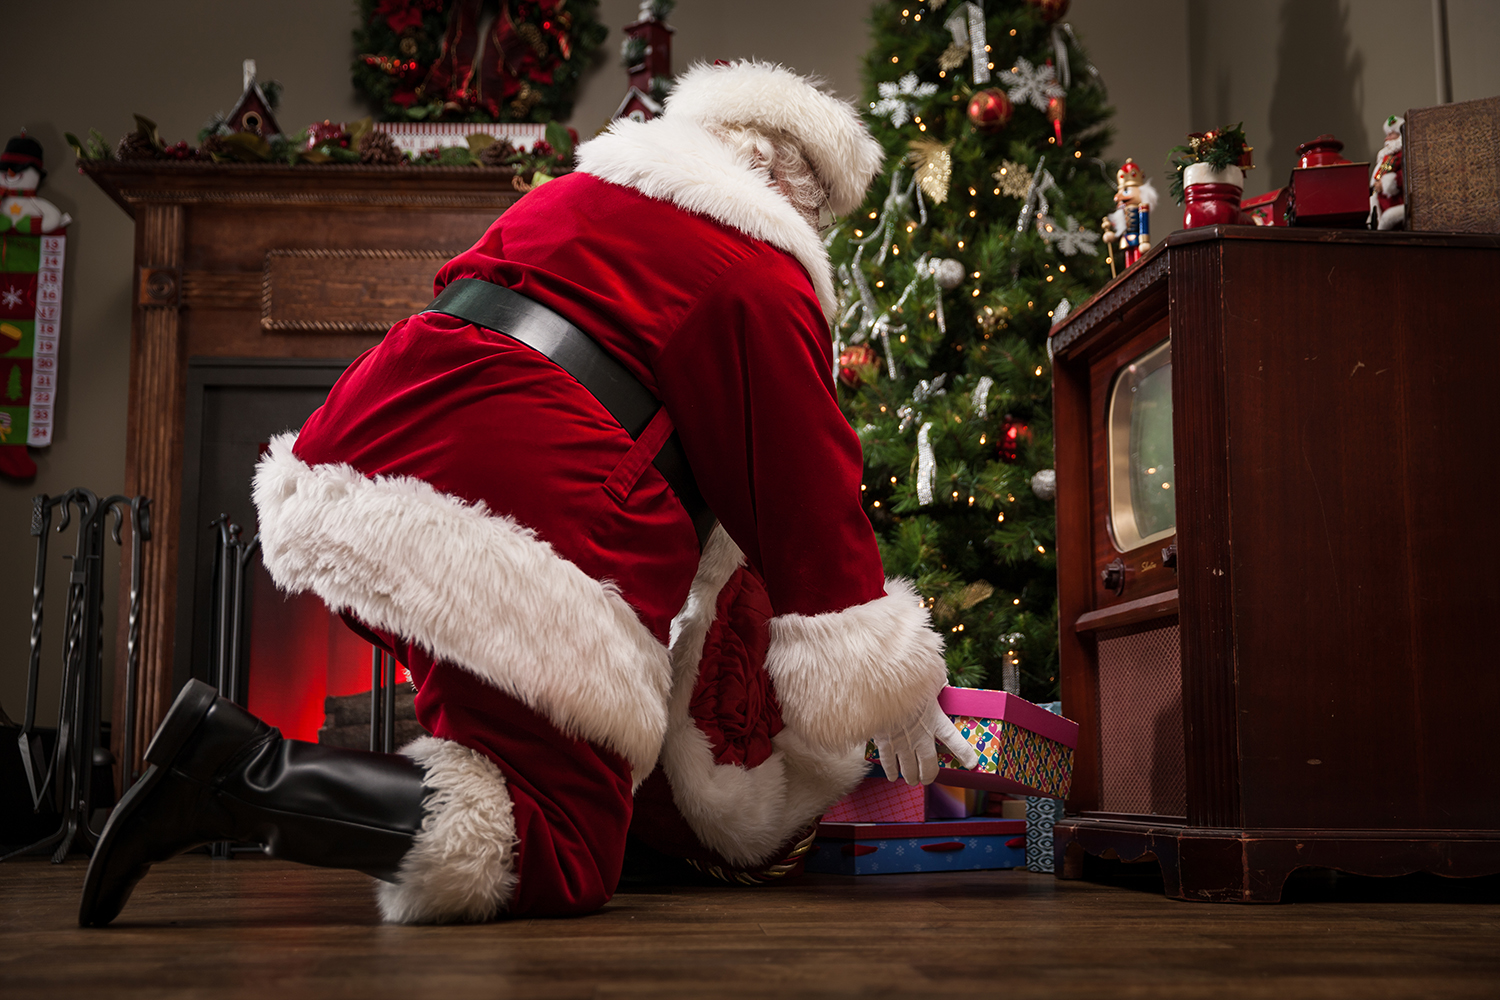 Santa has a big job on Christmas Eve and needs to refuel with snacks (Photo credit: avid_creative/ Getty Images)